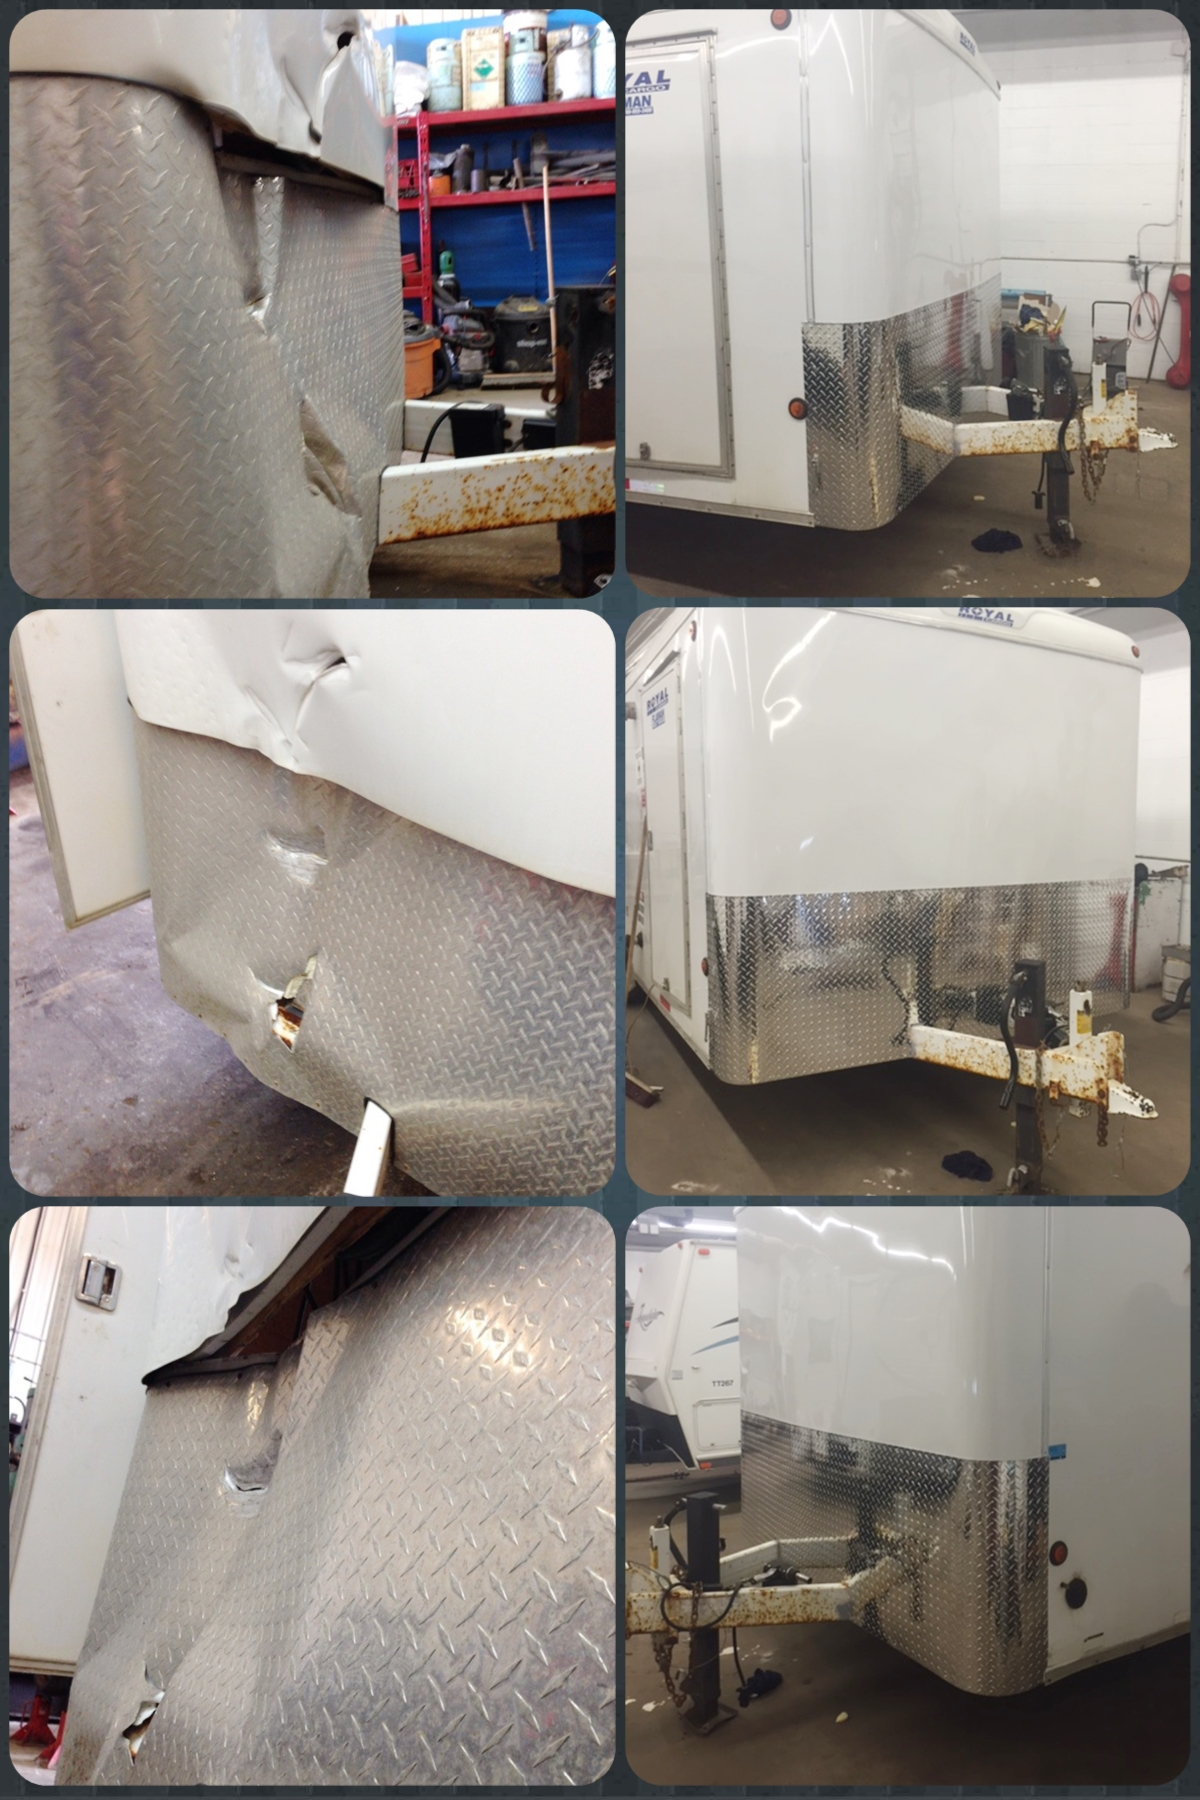 Boiler Trailer Before and After